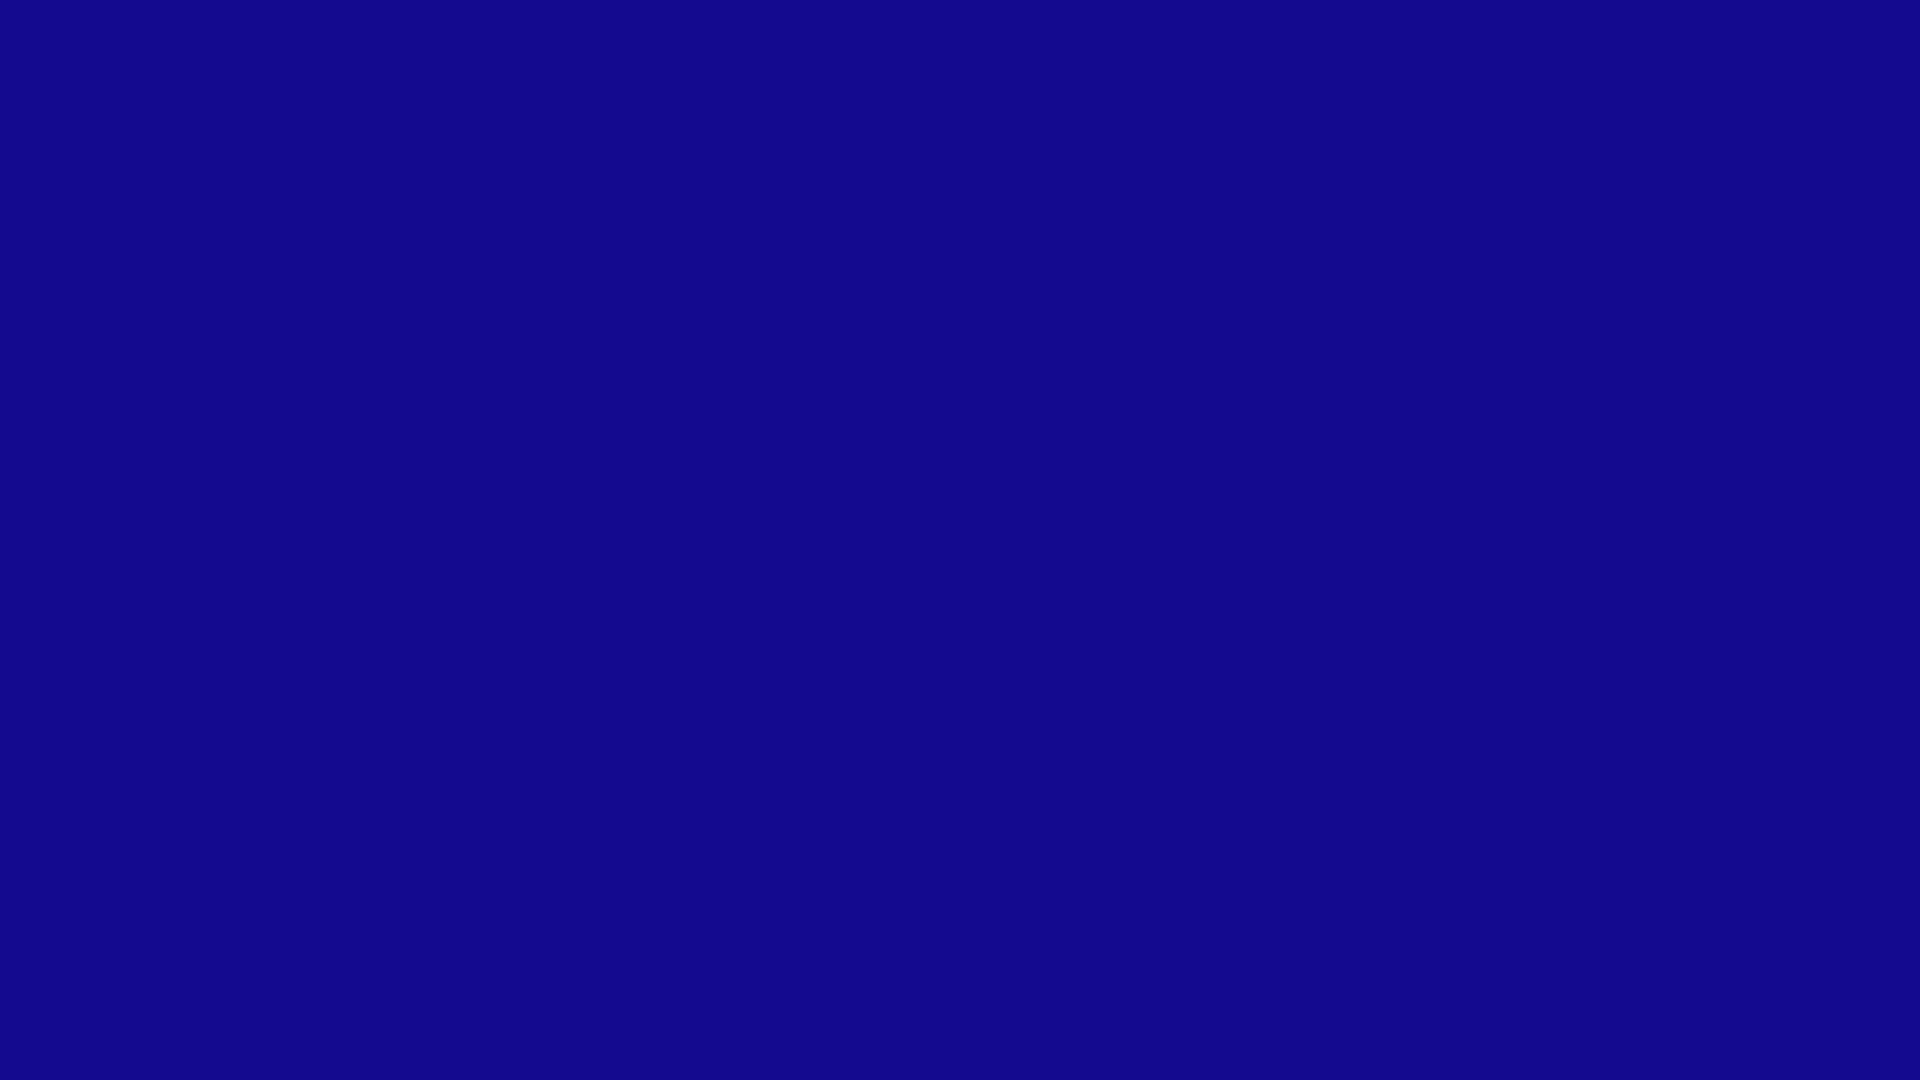 1920x1080 Ultramarine Solid Color Background